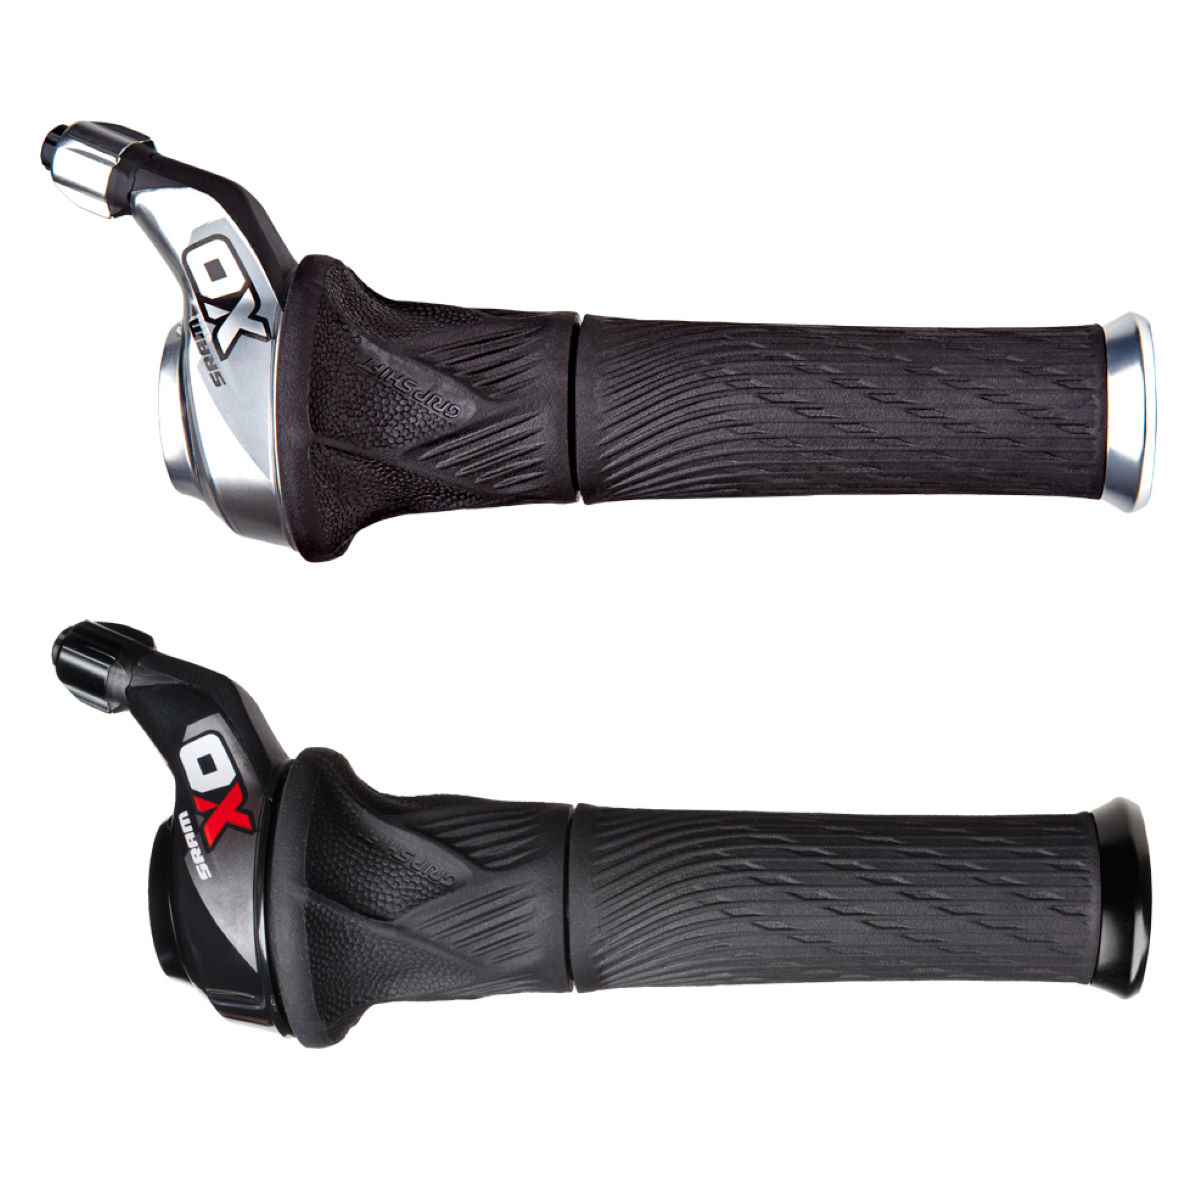 SRAM X0 10-Speed Rear Grip Shift with Lock-On Grip